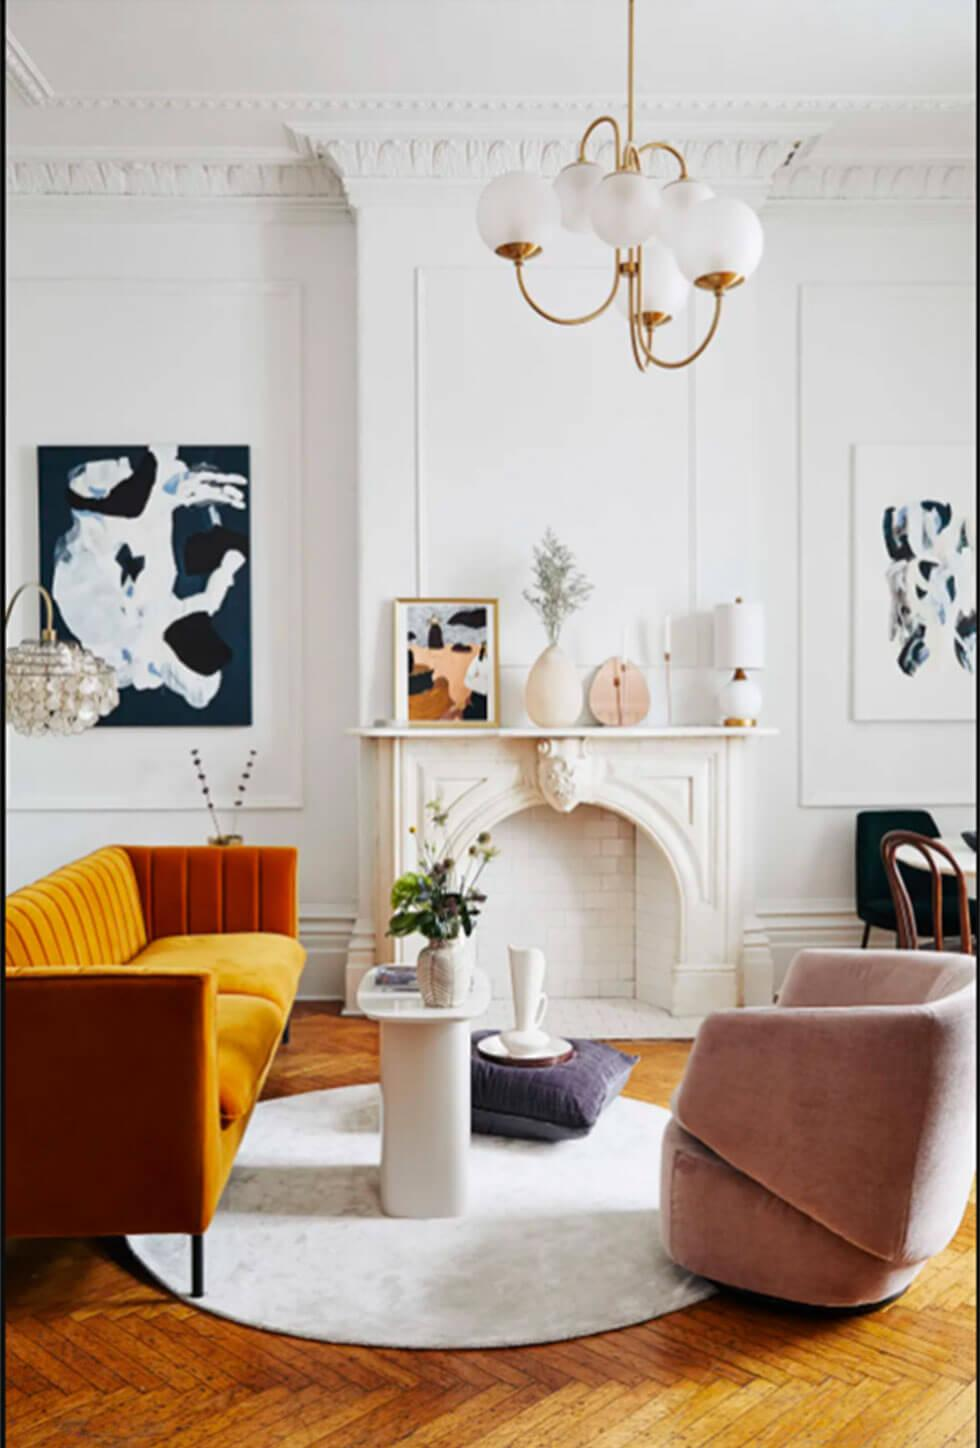 a stylish living room layout with the fireplace as the focal point